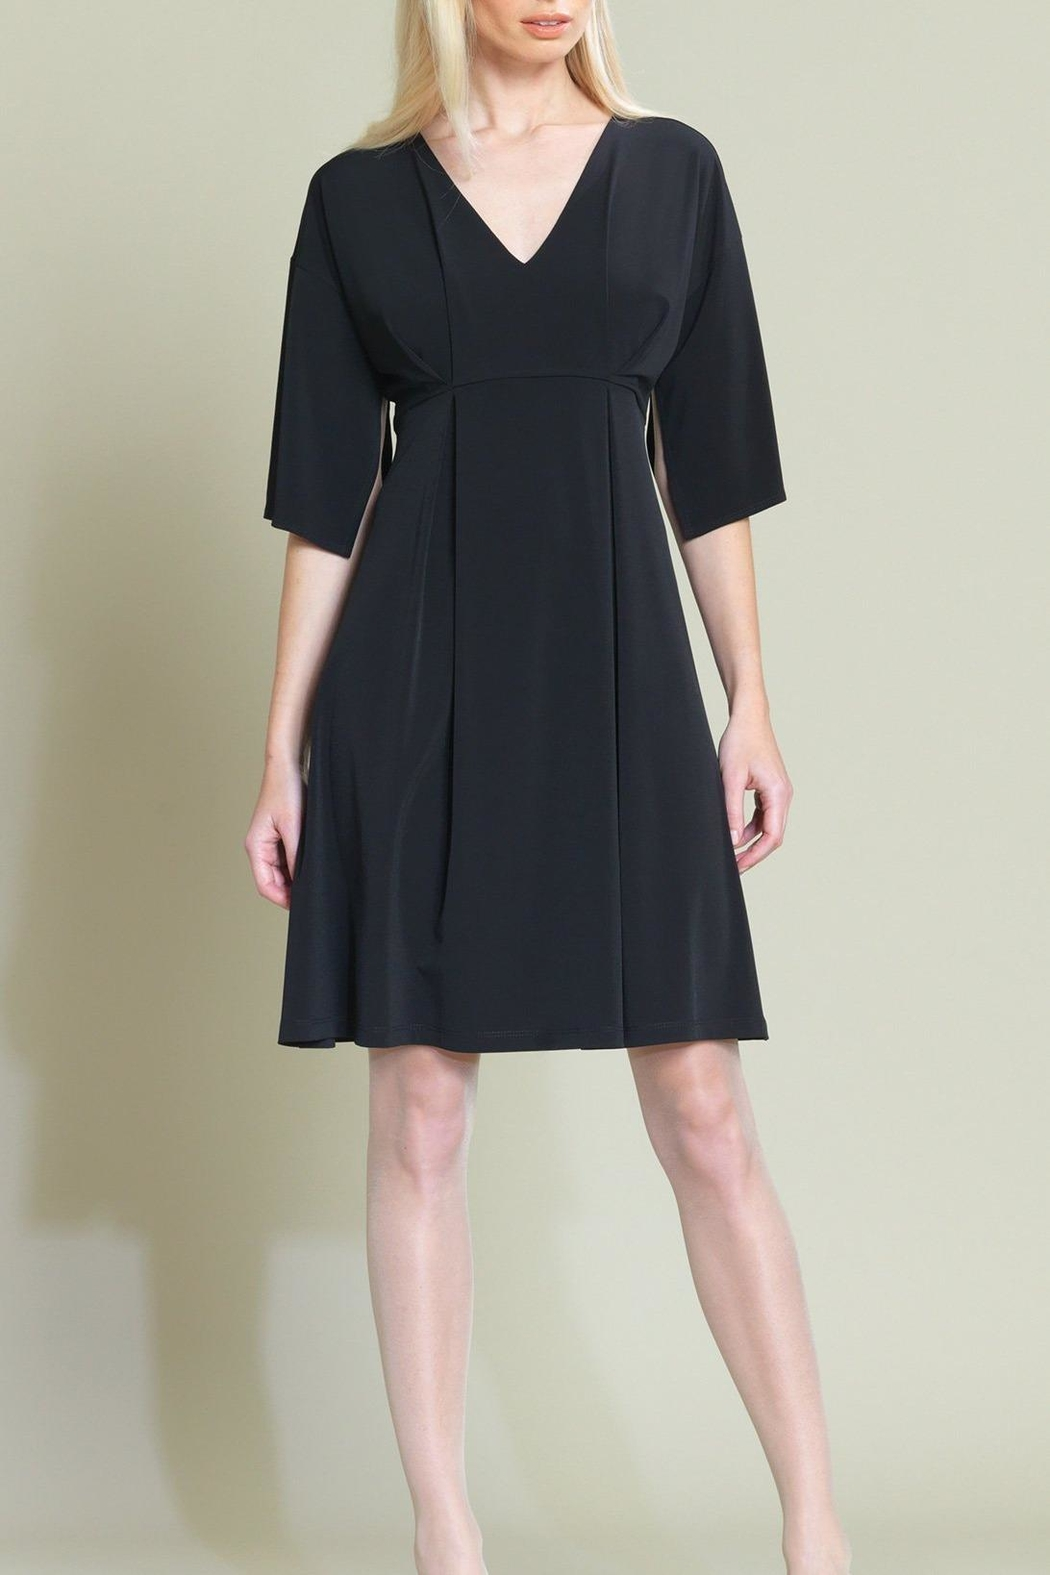 Clara Sunwoo Empire Pinched Dress - Front Cropped Image